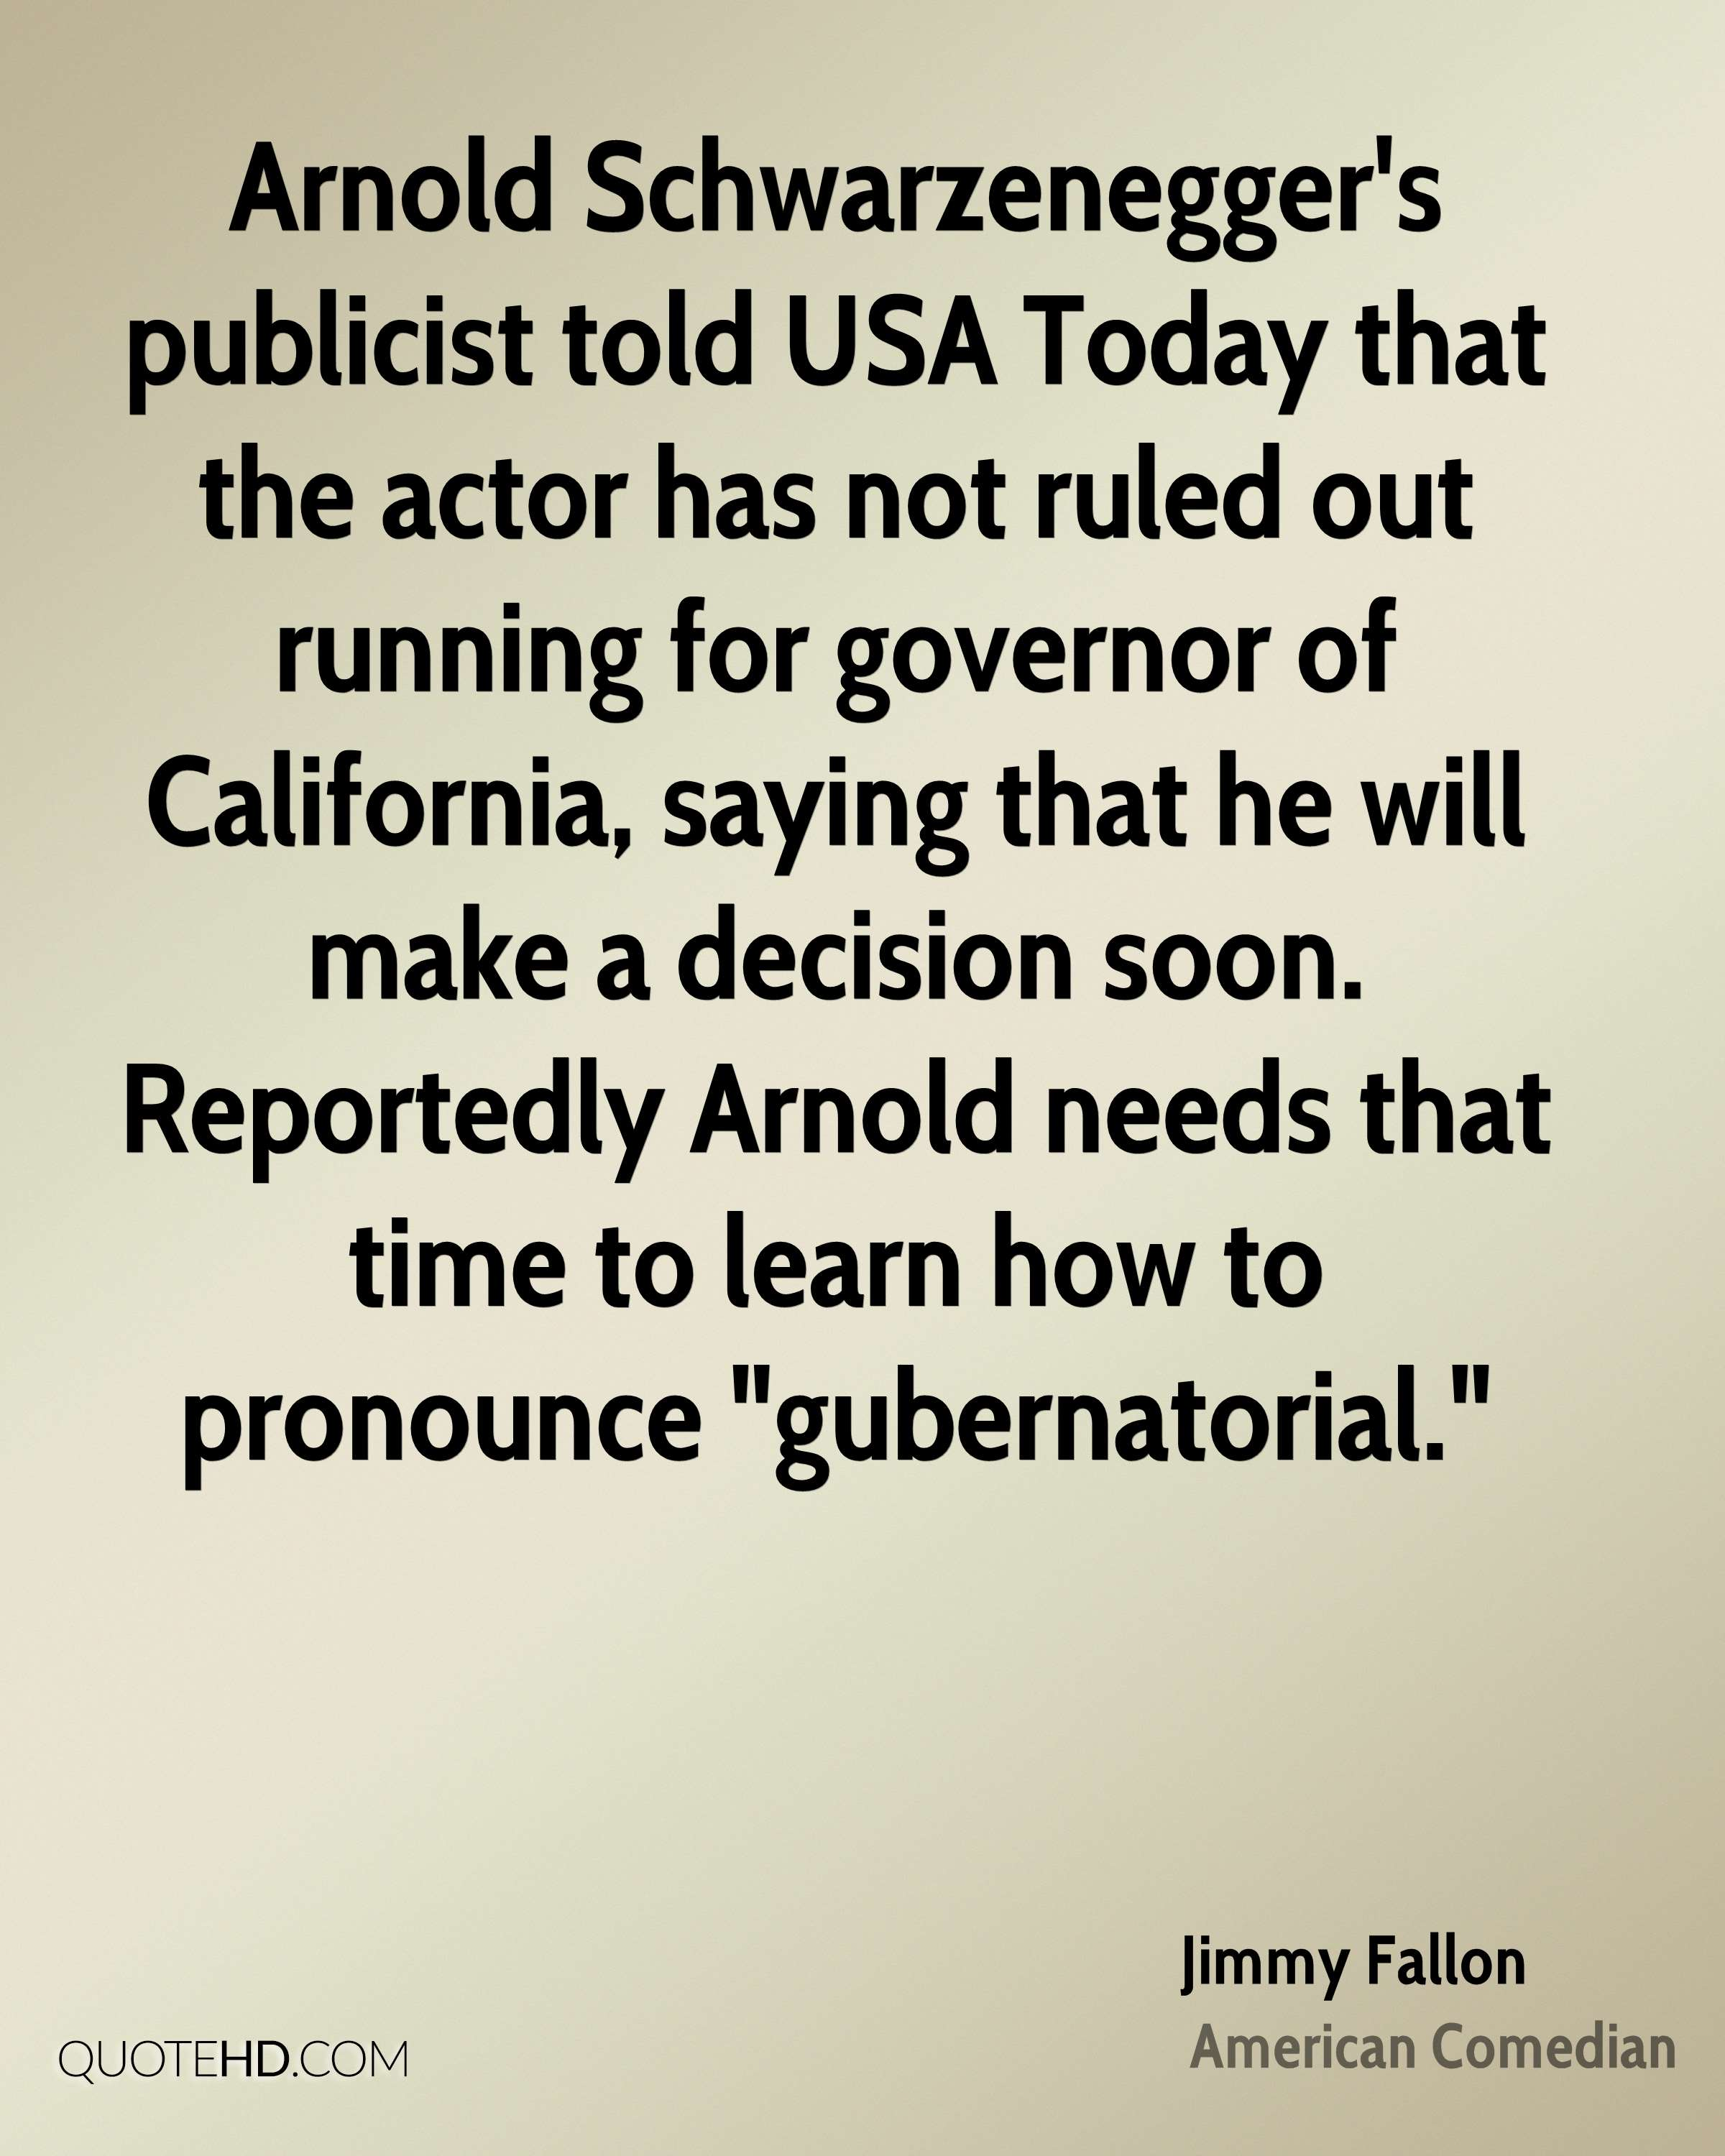 """Arnold Schwarzenegger's publicist told USA Today that the actor has not ruled out running for governor of California, saying that he will make a decision soon. Reportedly Arnold needs that time to learn how to pronounce """"gubernatorial."""""""